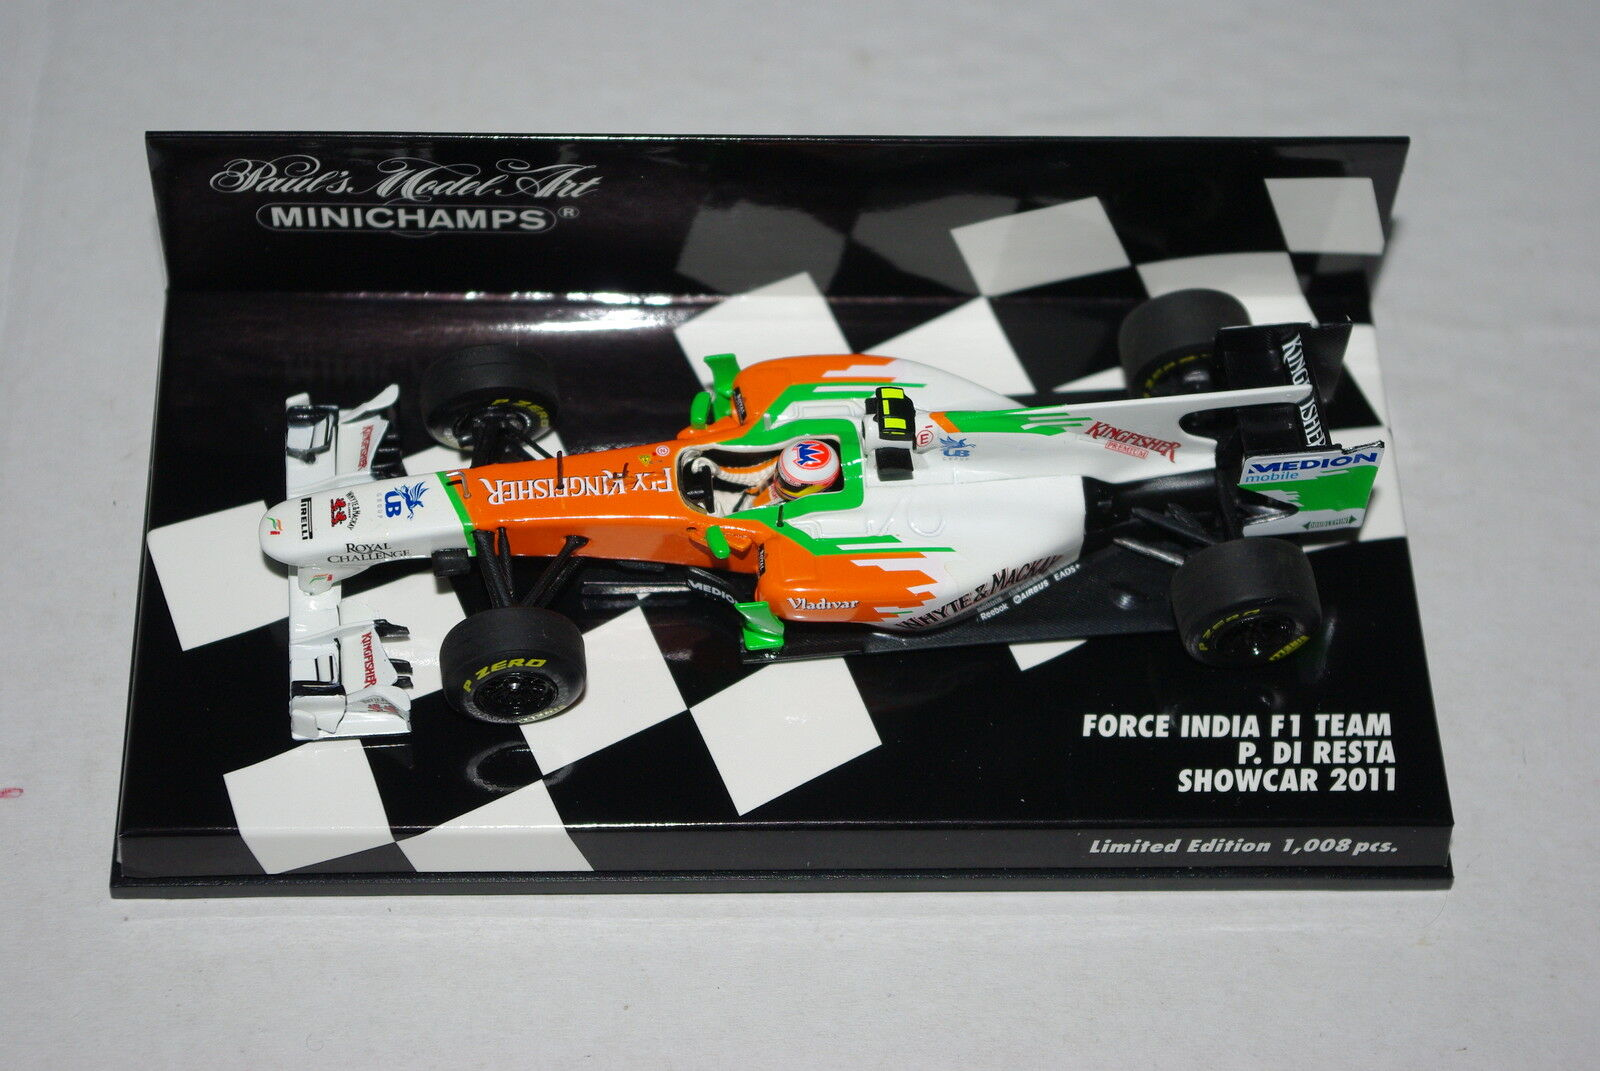 Minichamps F1 1 43 Force India F1 Team Show Voiture 2011 Paul di Resta